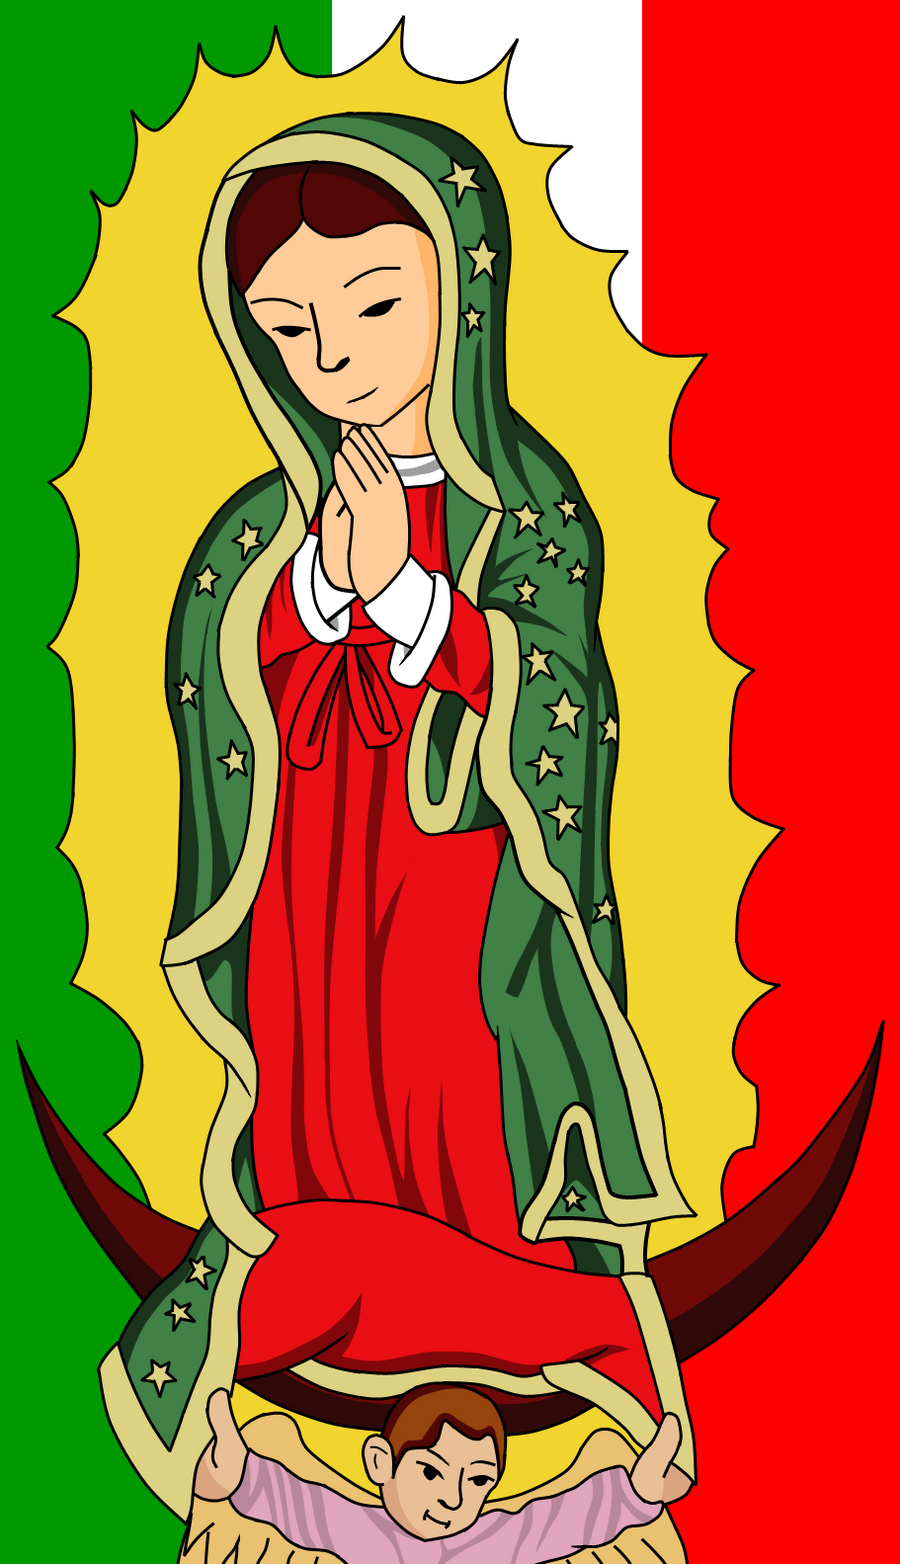 ... 2010 2012 gamergirl304 pic i made of la virgen de guadalupe